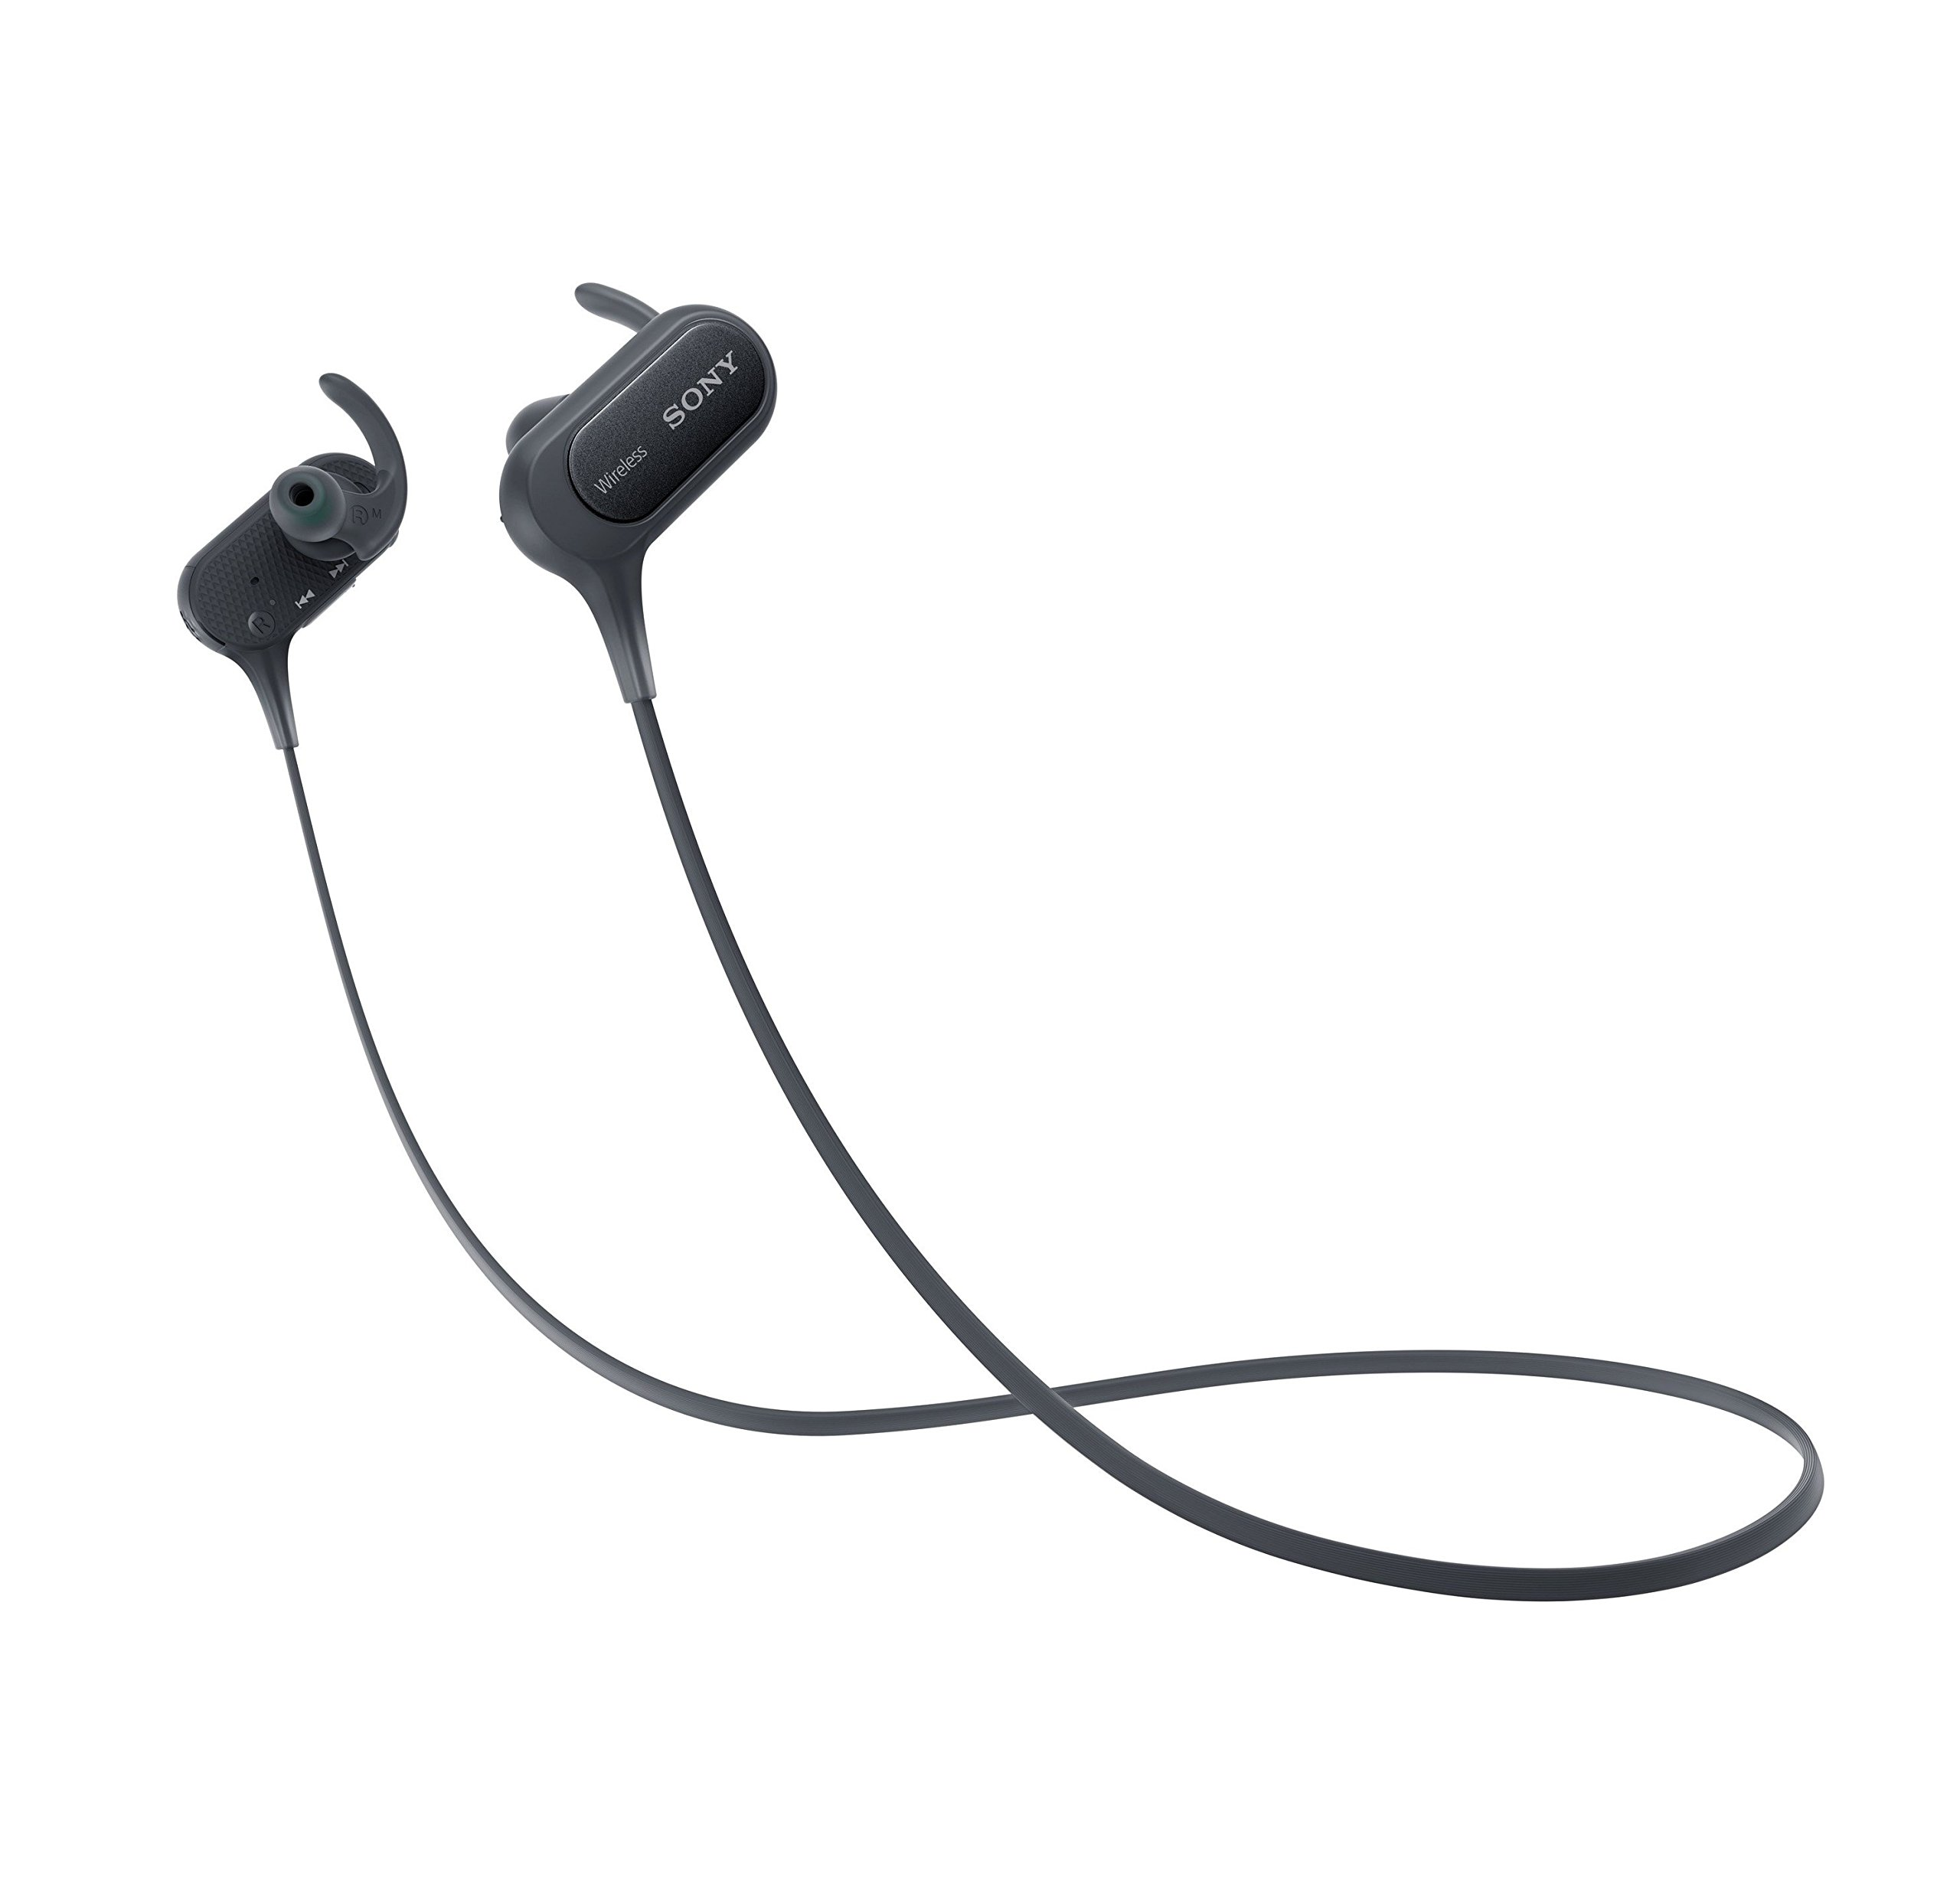 Sony Extra Bass Bluetooth Headphones, Best Wireless Sports Earbuds with Mic/ Microphone, IPX4 Splashproof Stereo Comfort Gym Running Workout up to 8.5 hour battery, black